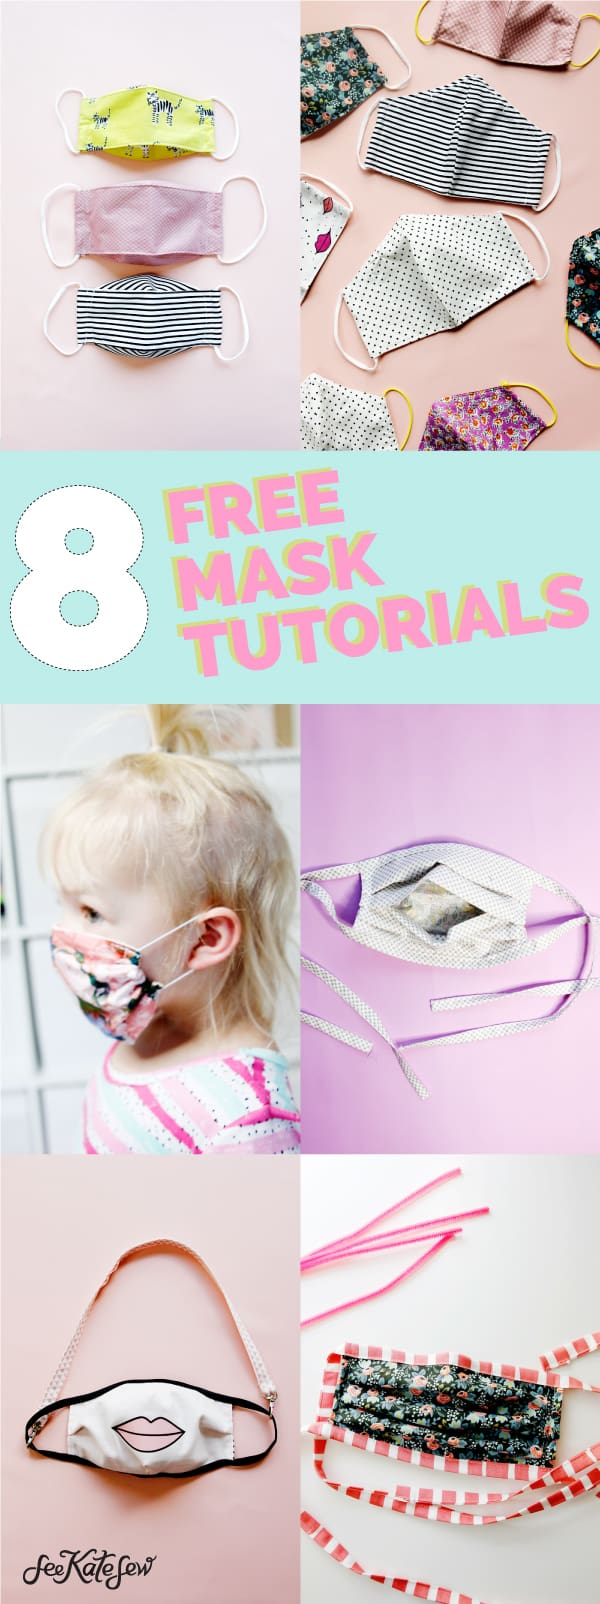 8 free face mask tutorials and patterns